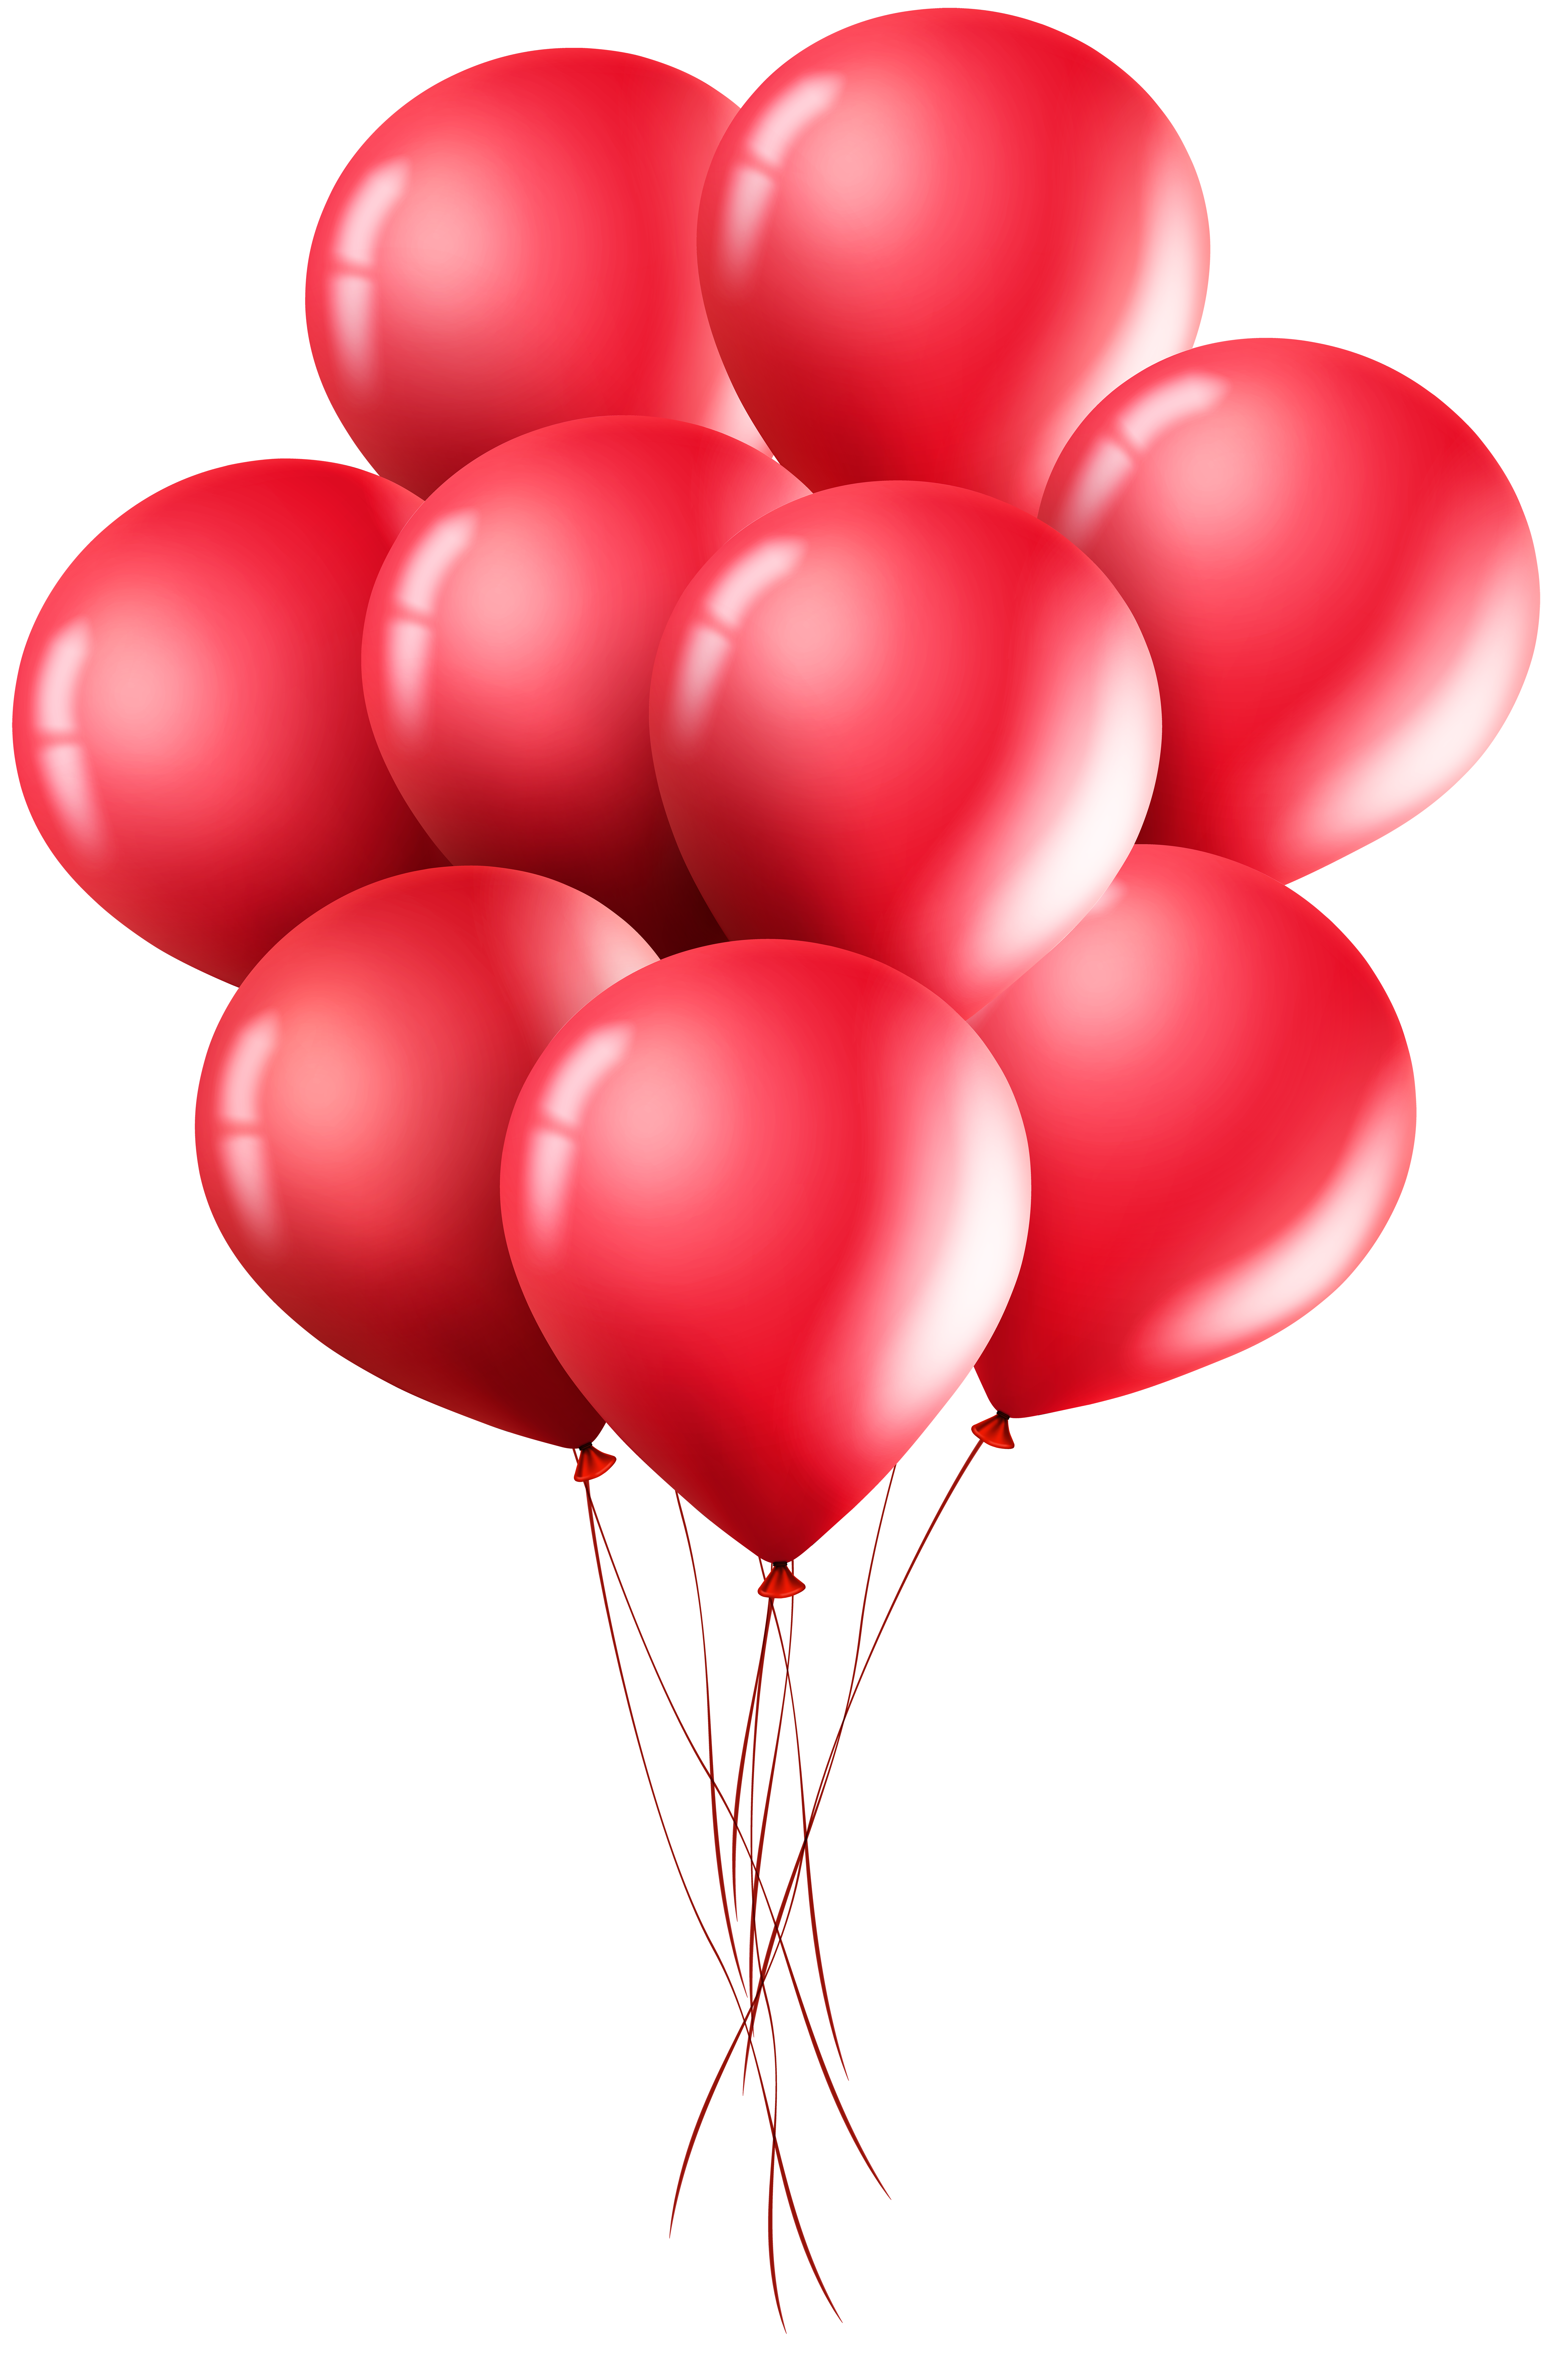 Red balloons png. Clip art image gallery